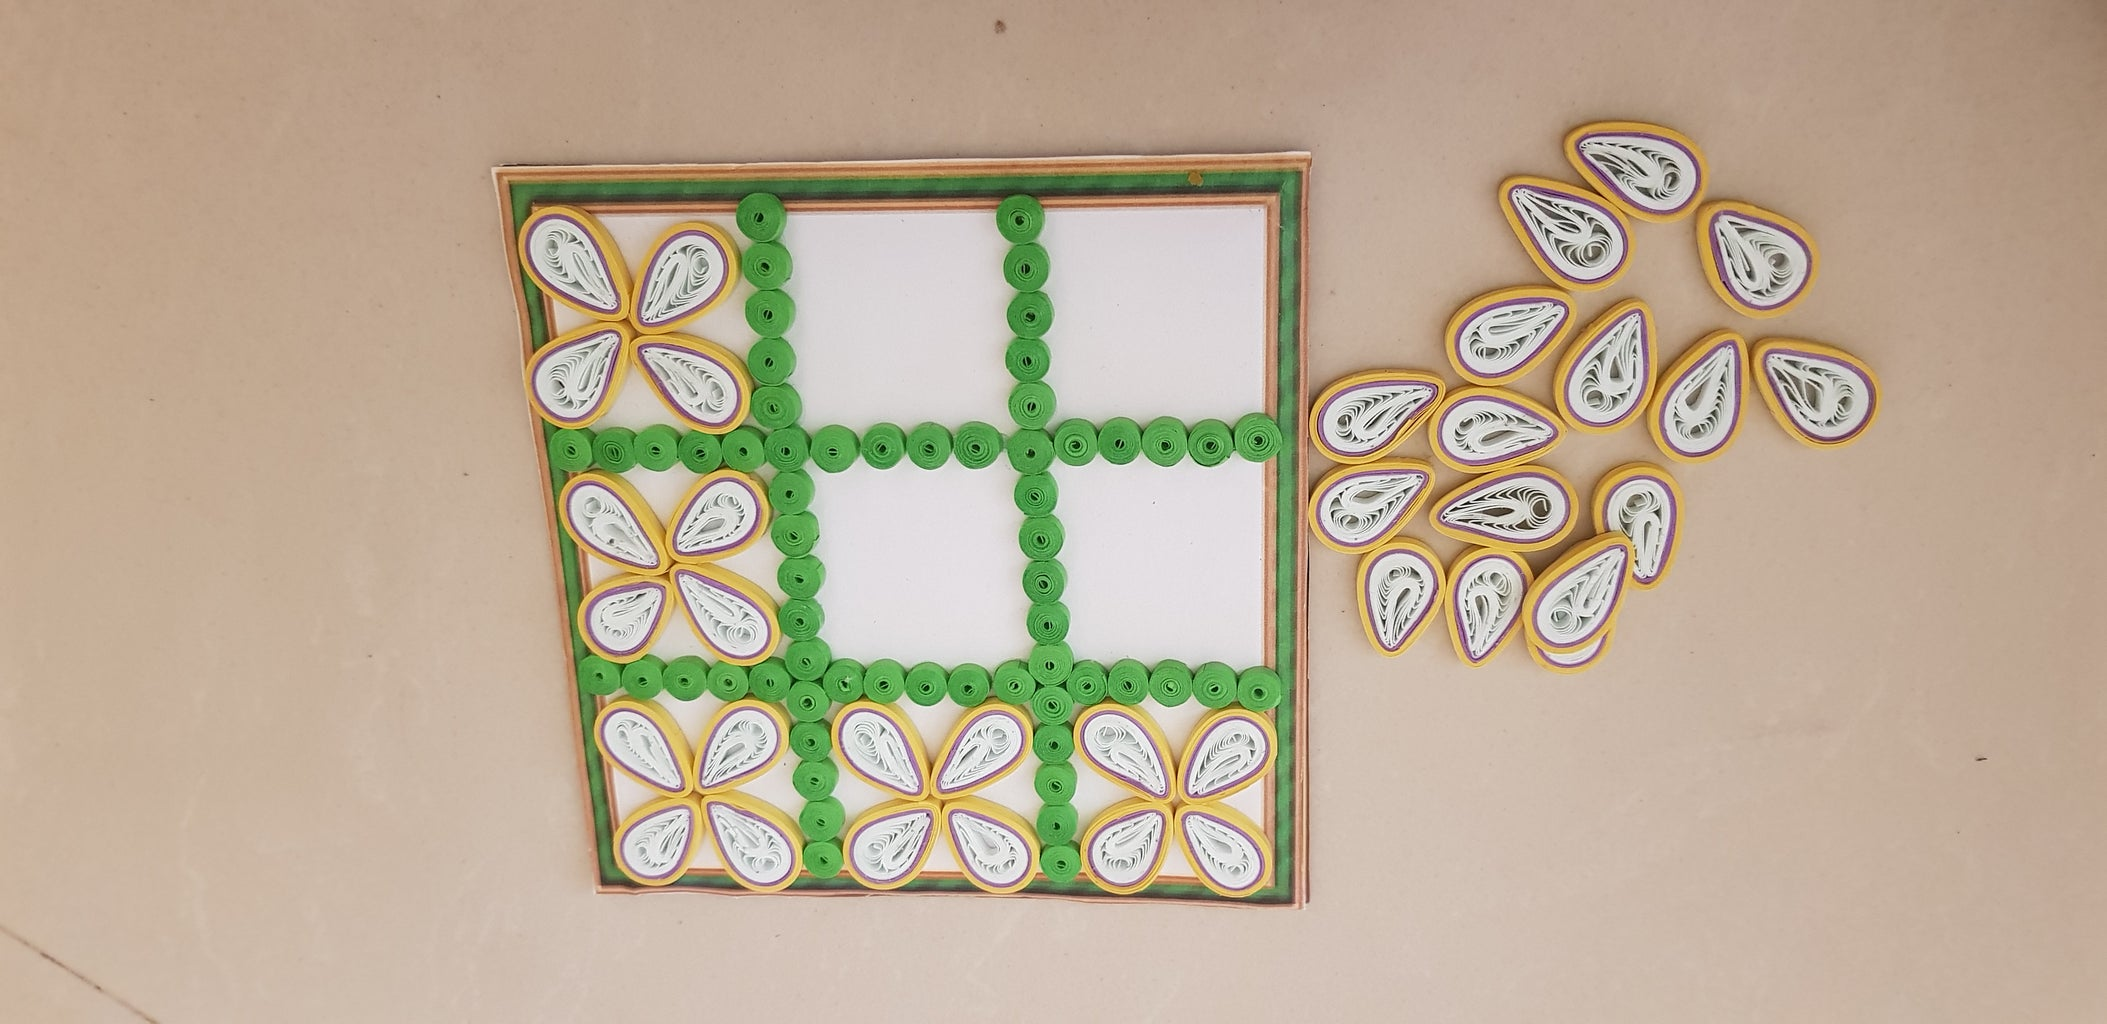 Decoration With Tight Quilling Coils